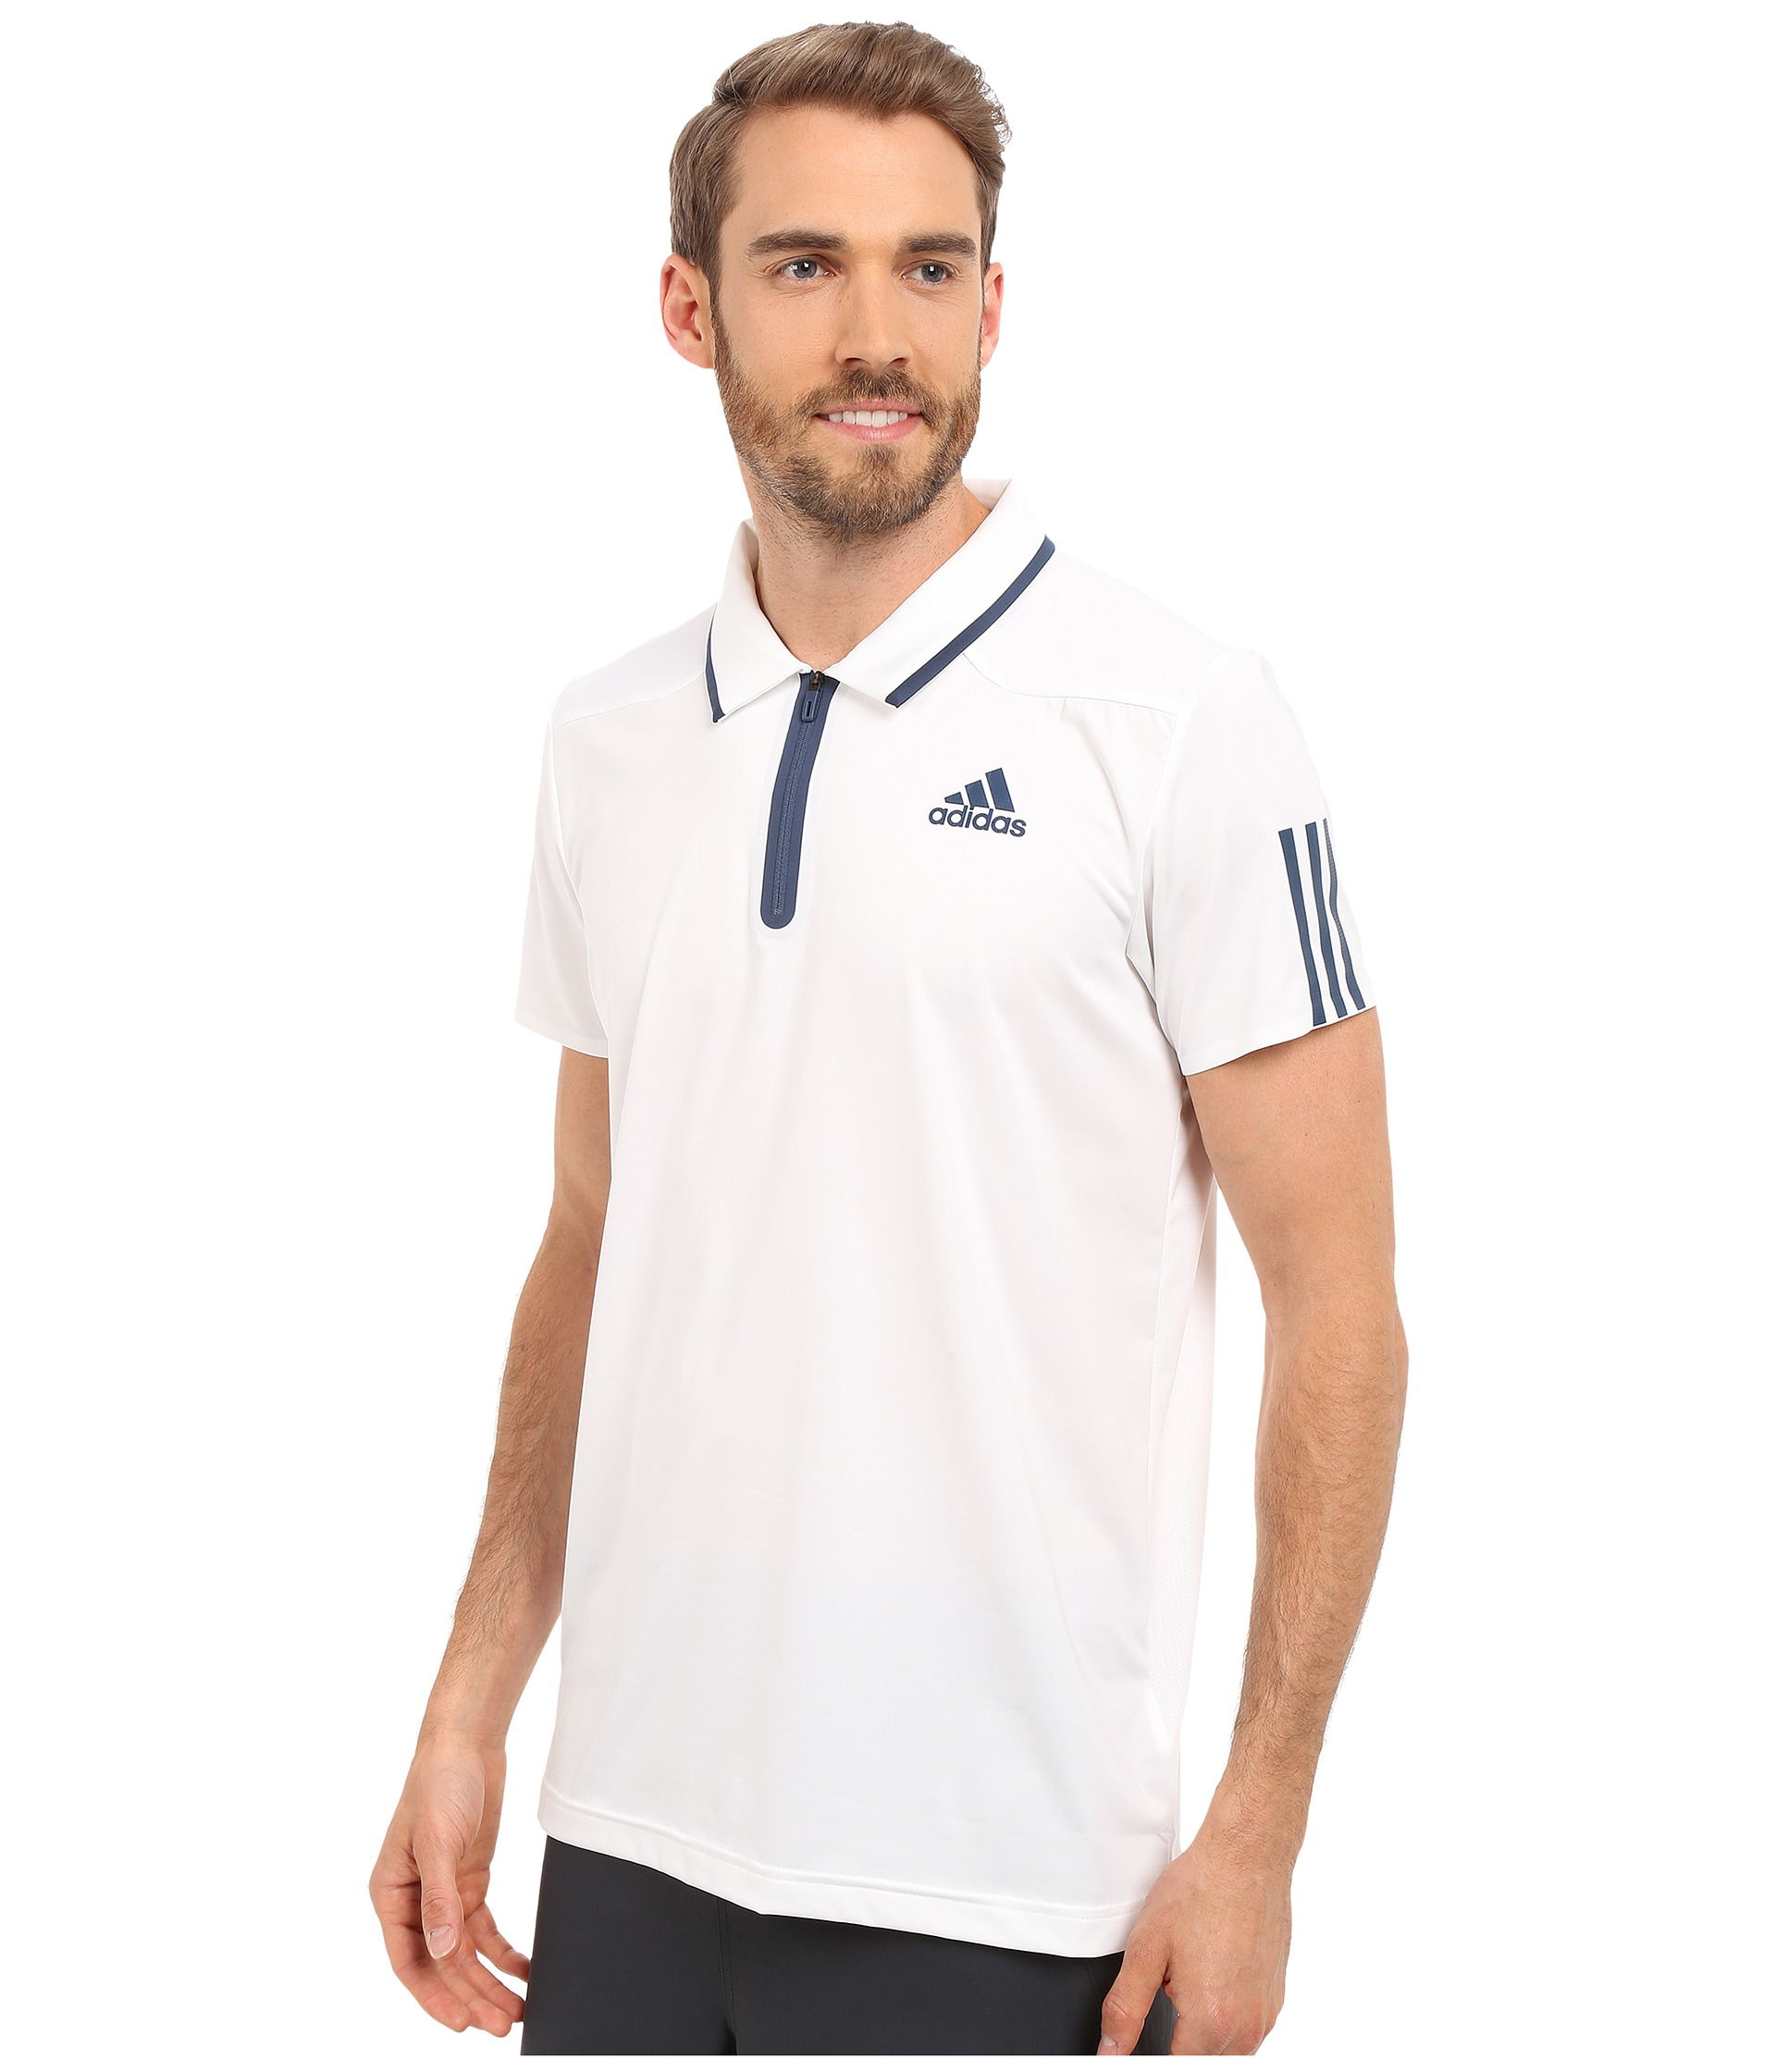 Adidas Barricade Polo Shirt Free Shipping